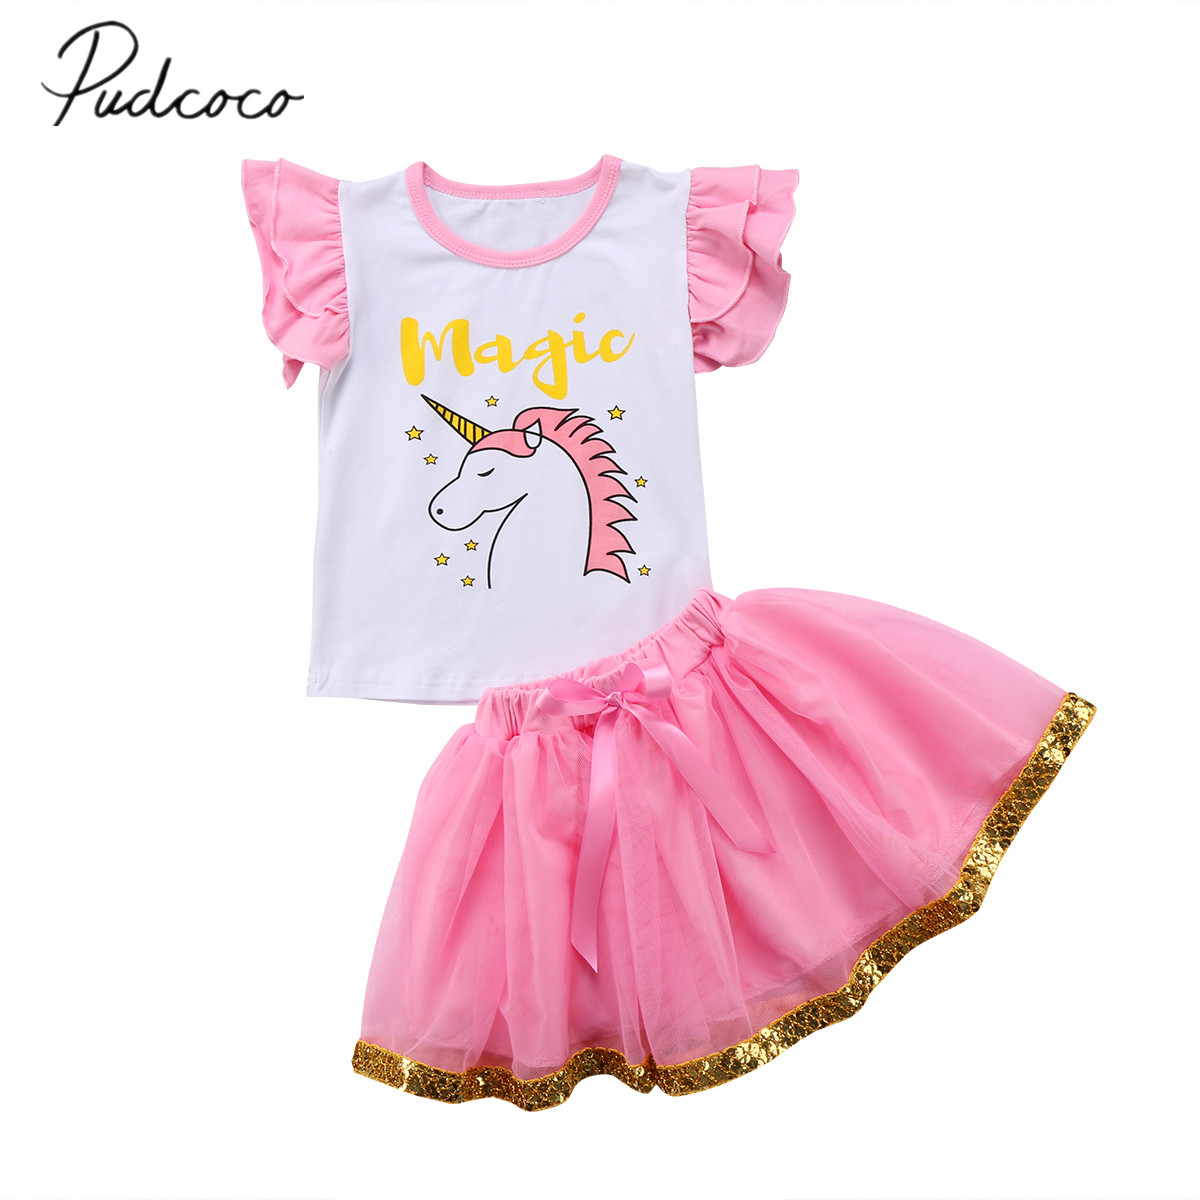 2018 brand new toddler infant child kids girl clothes